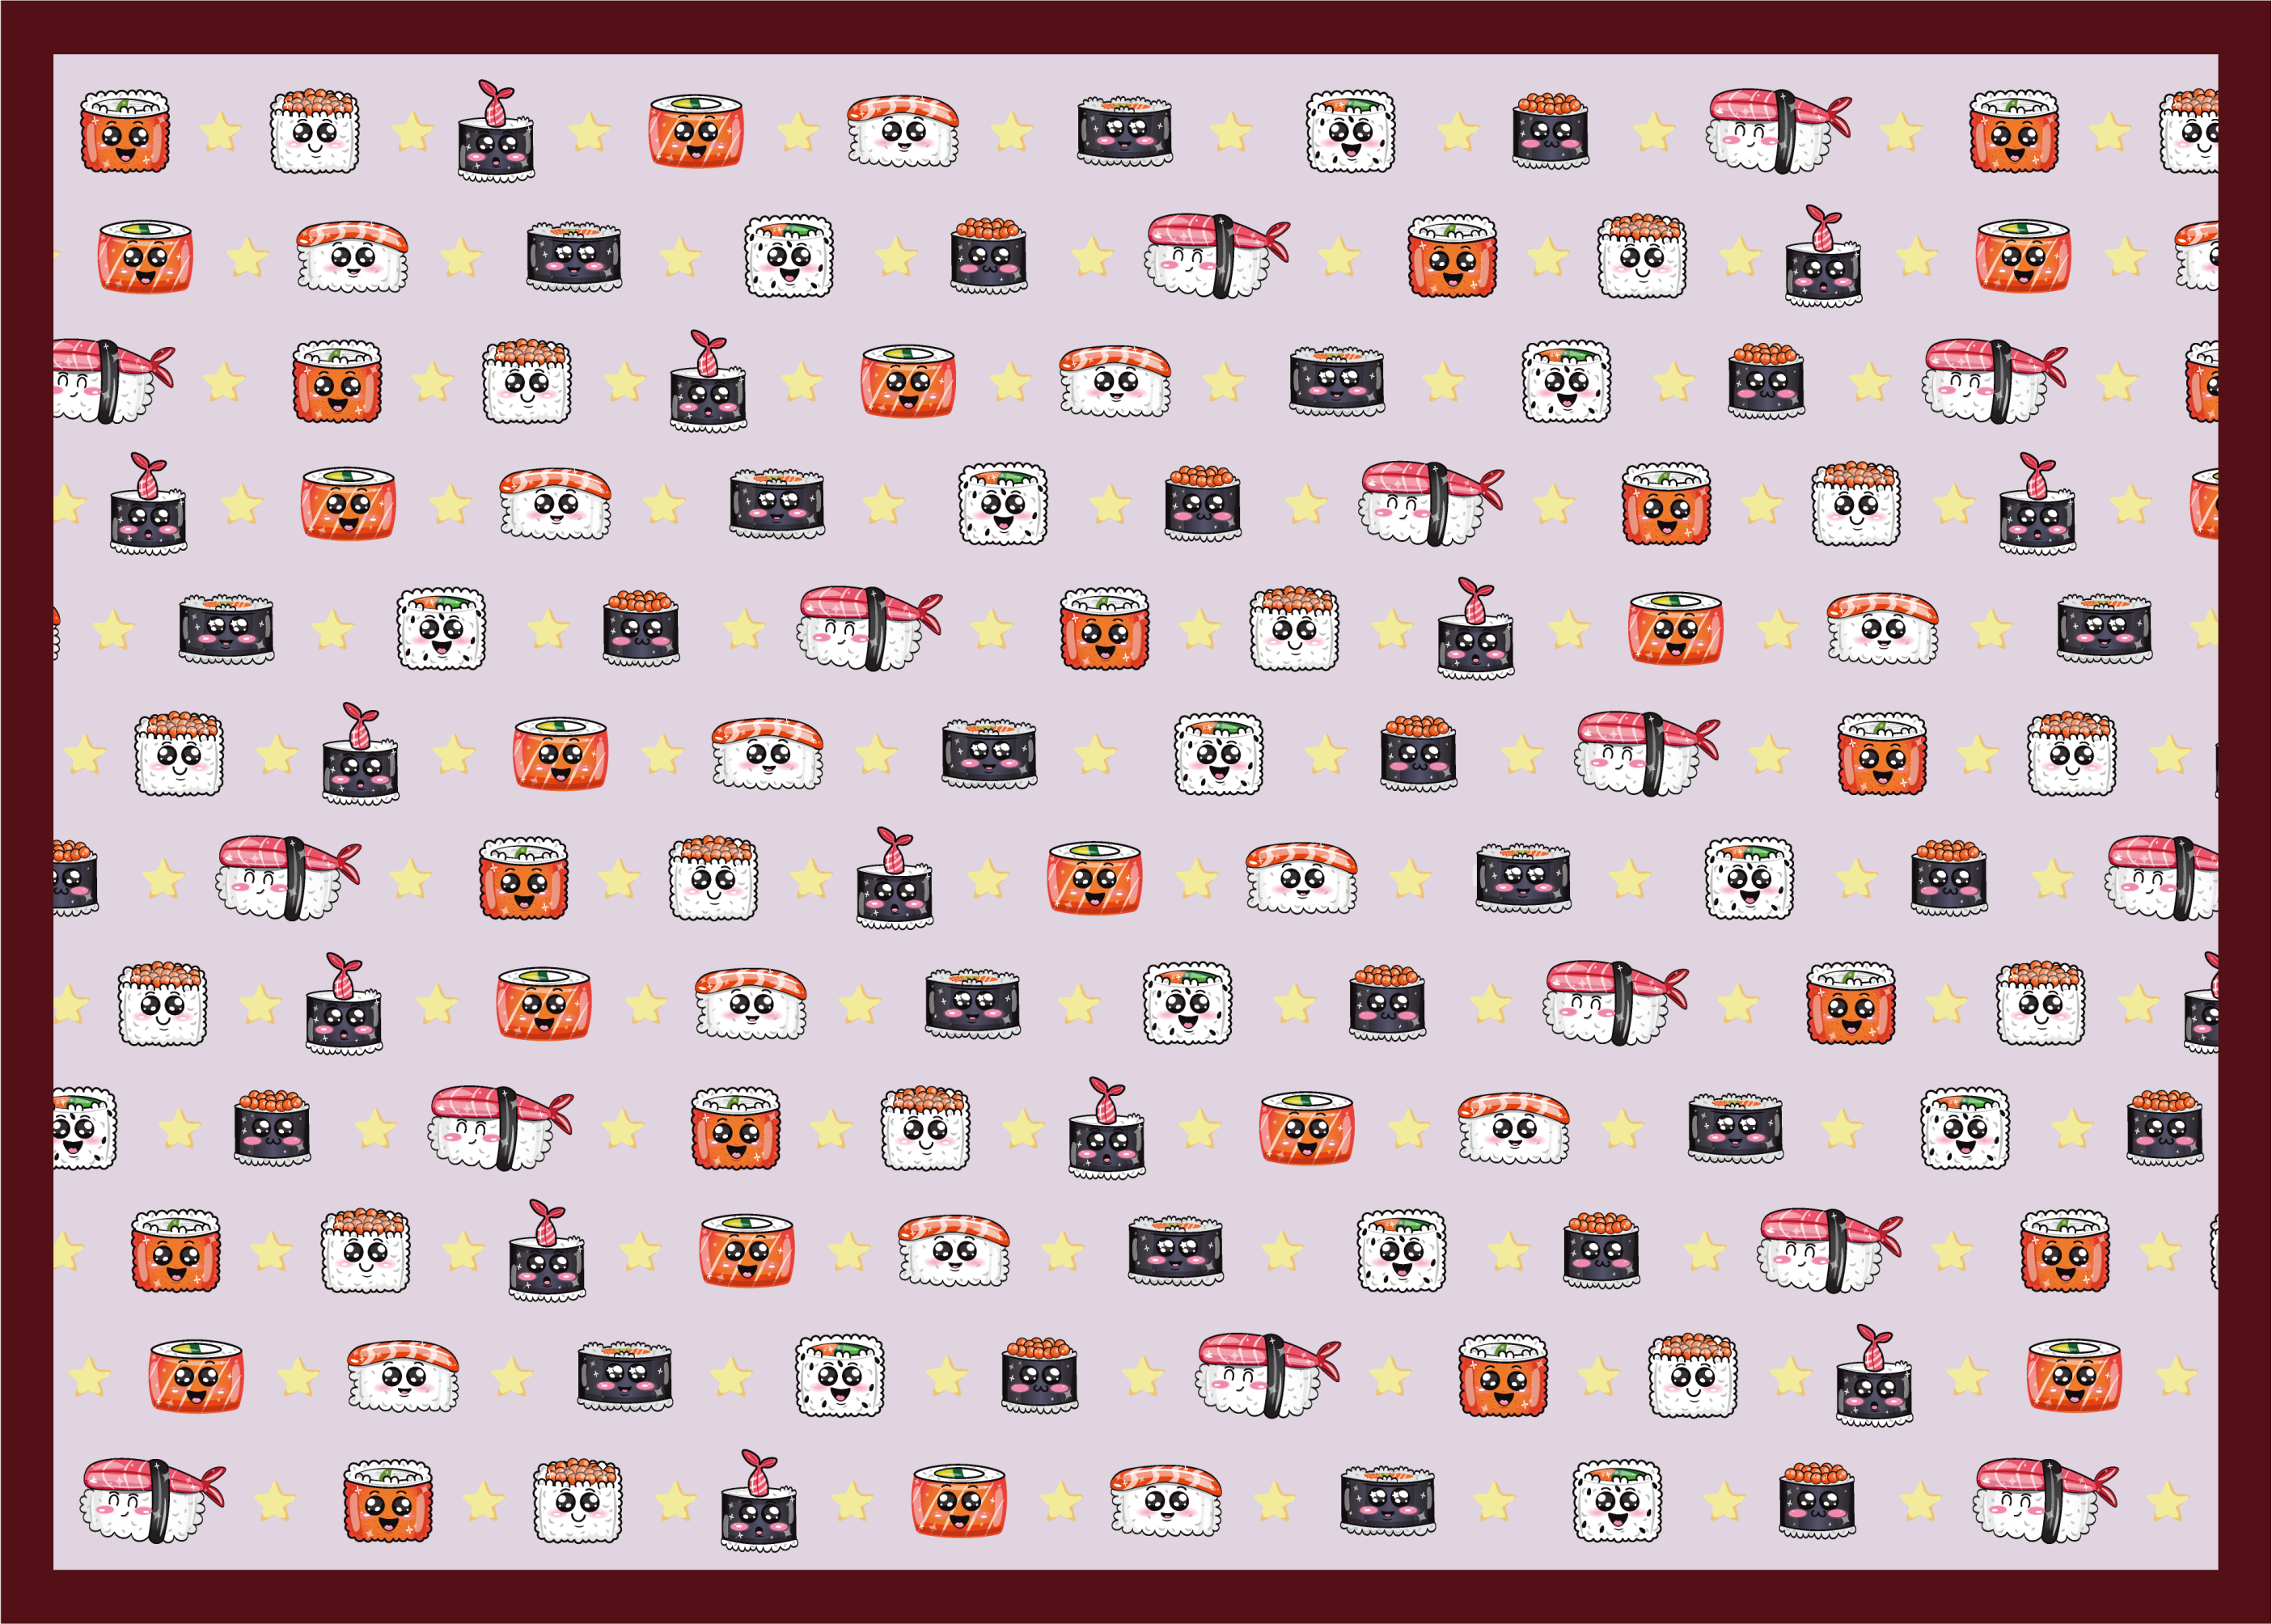 TenStickers. Anime Sushi Pattern kids vinyl carpet. Kitchen vinyl rug which features an adorable pattern of sushi pieces with cute anime faces on them. +10,000 satisfied customers.